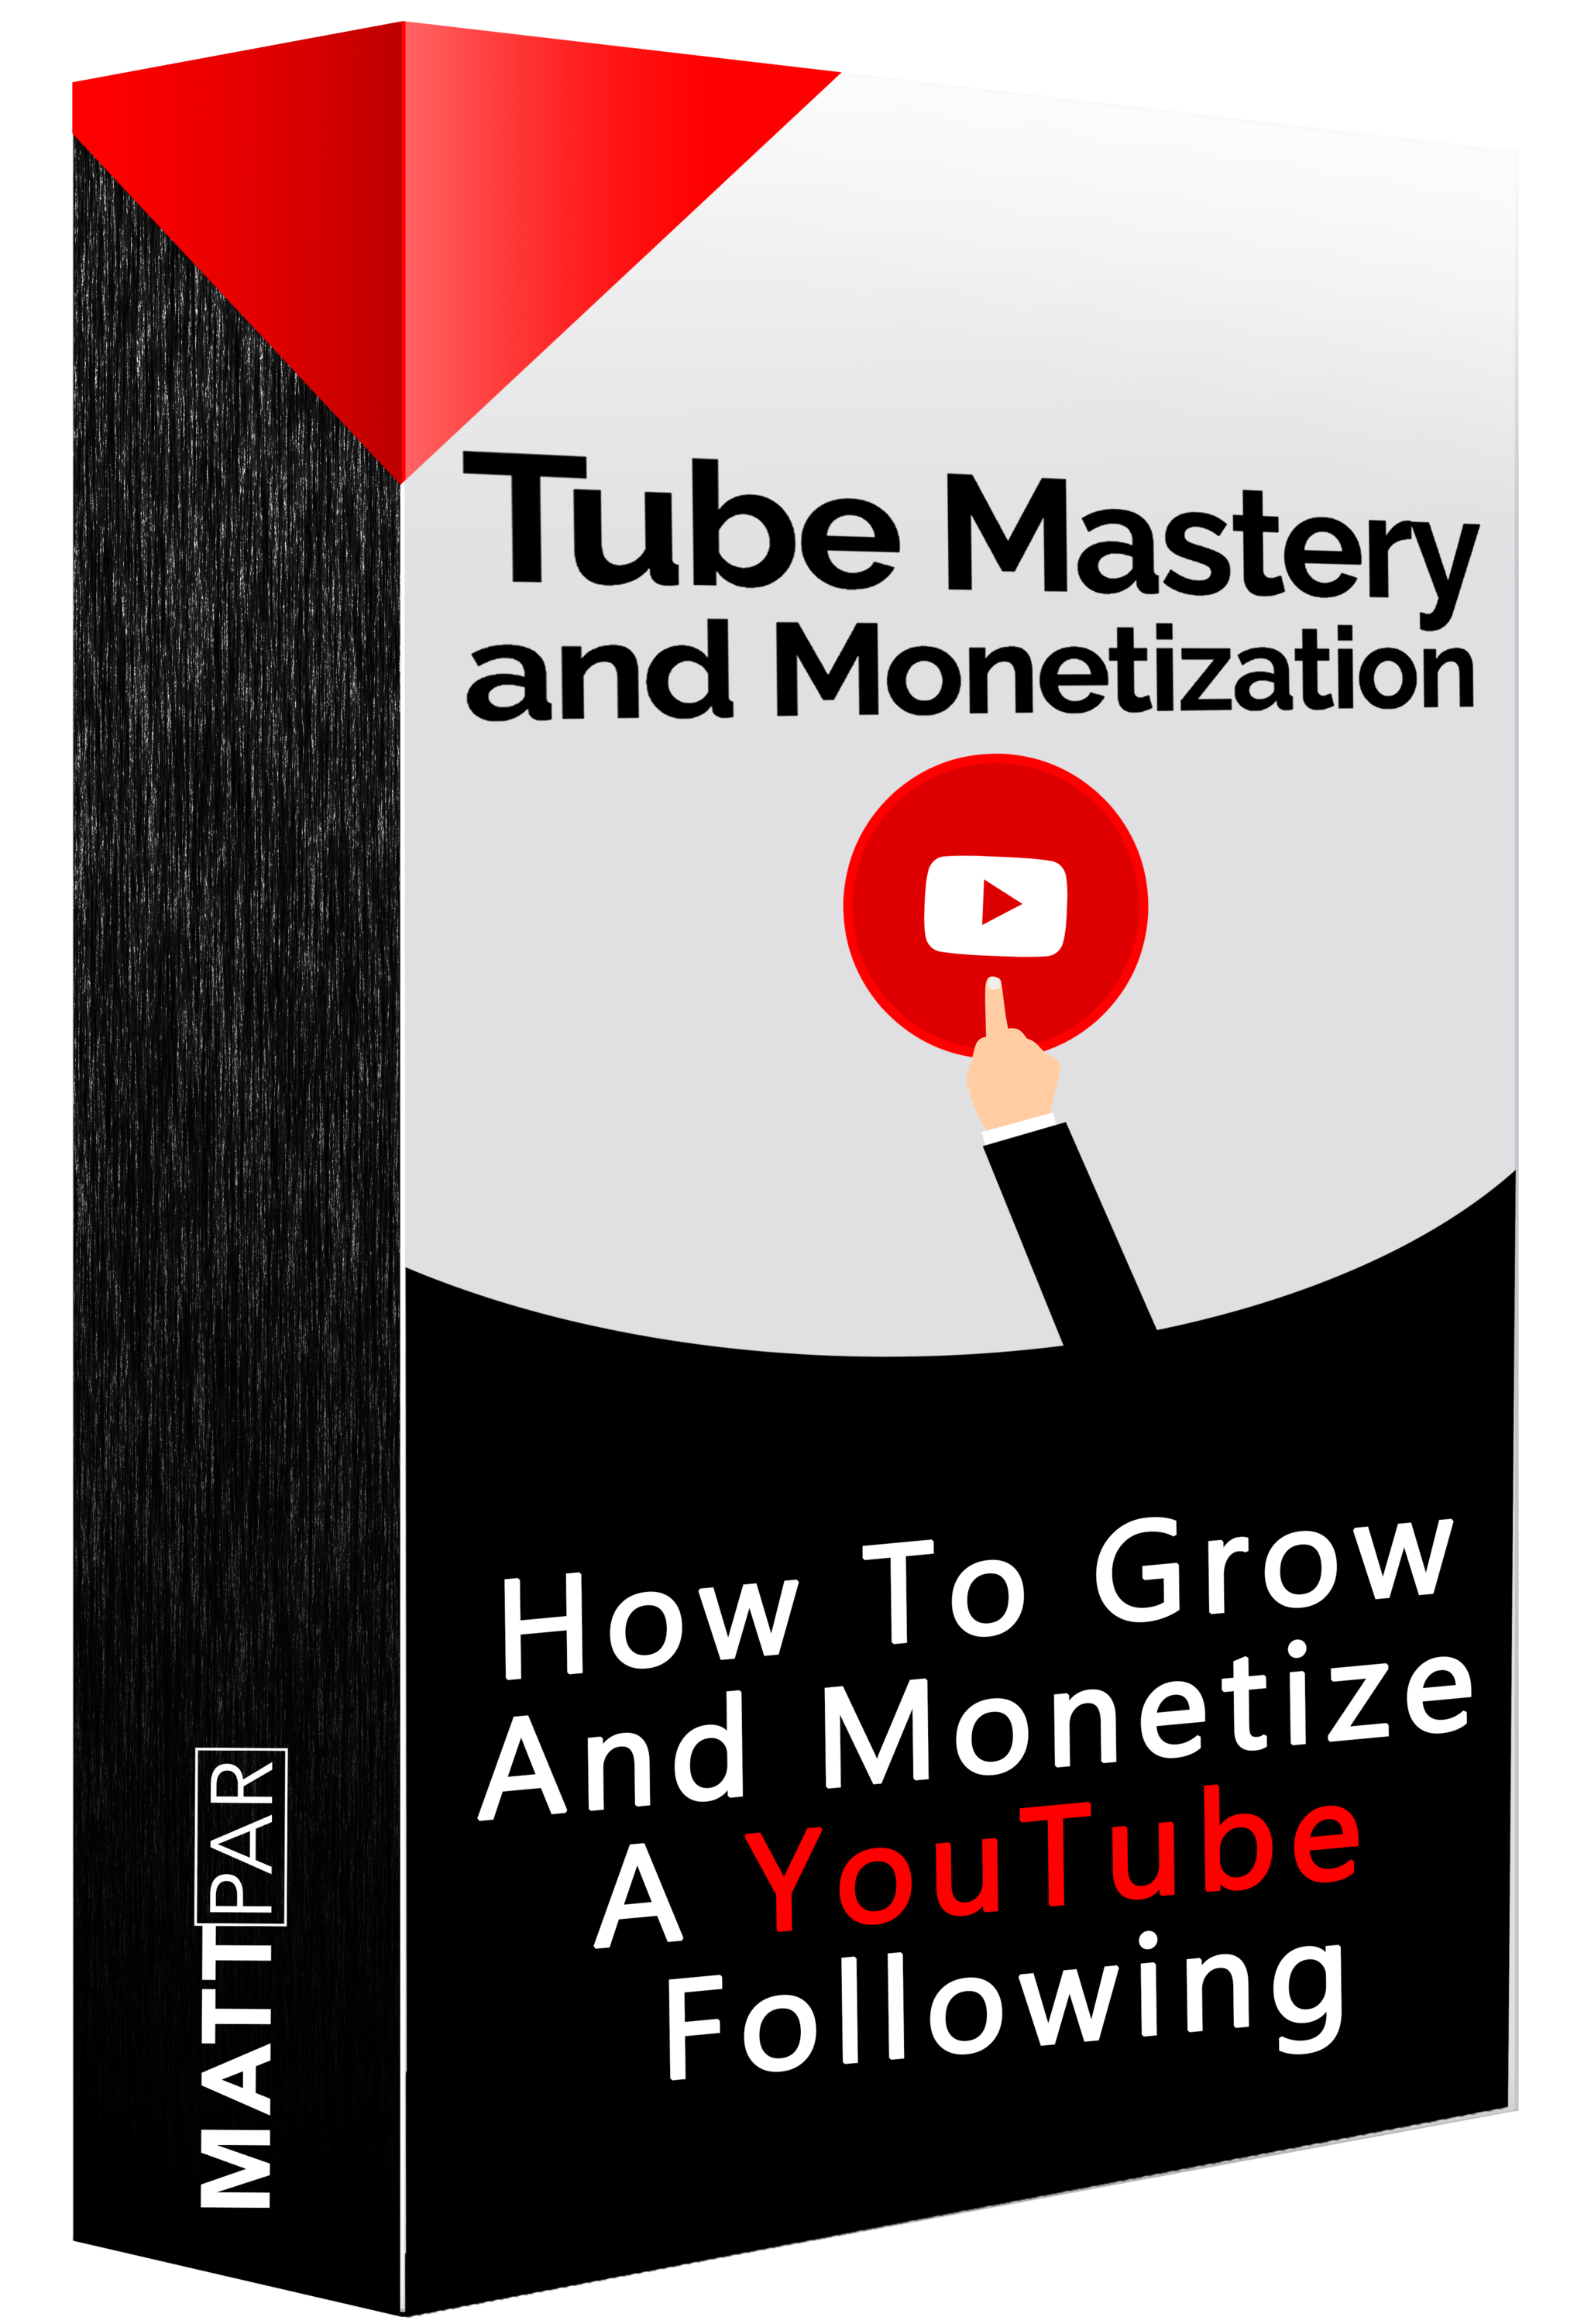 [GET] Tubemastery and Monetization | Free